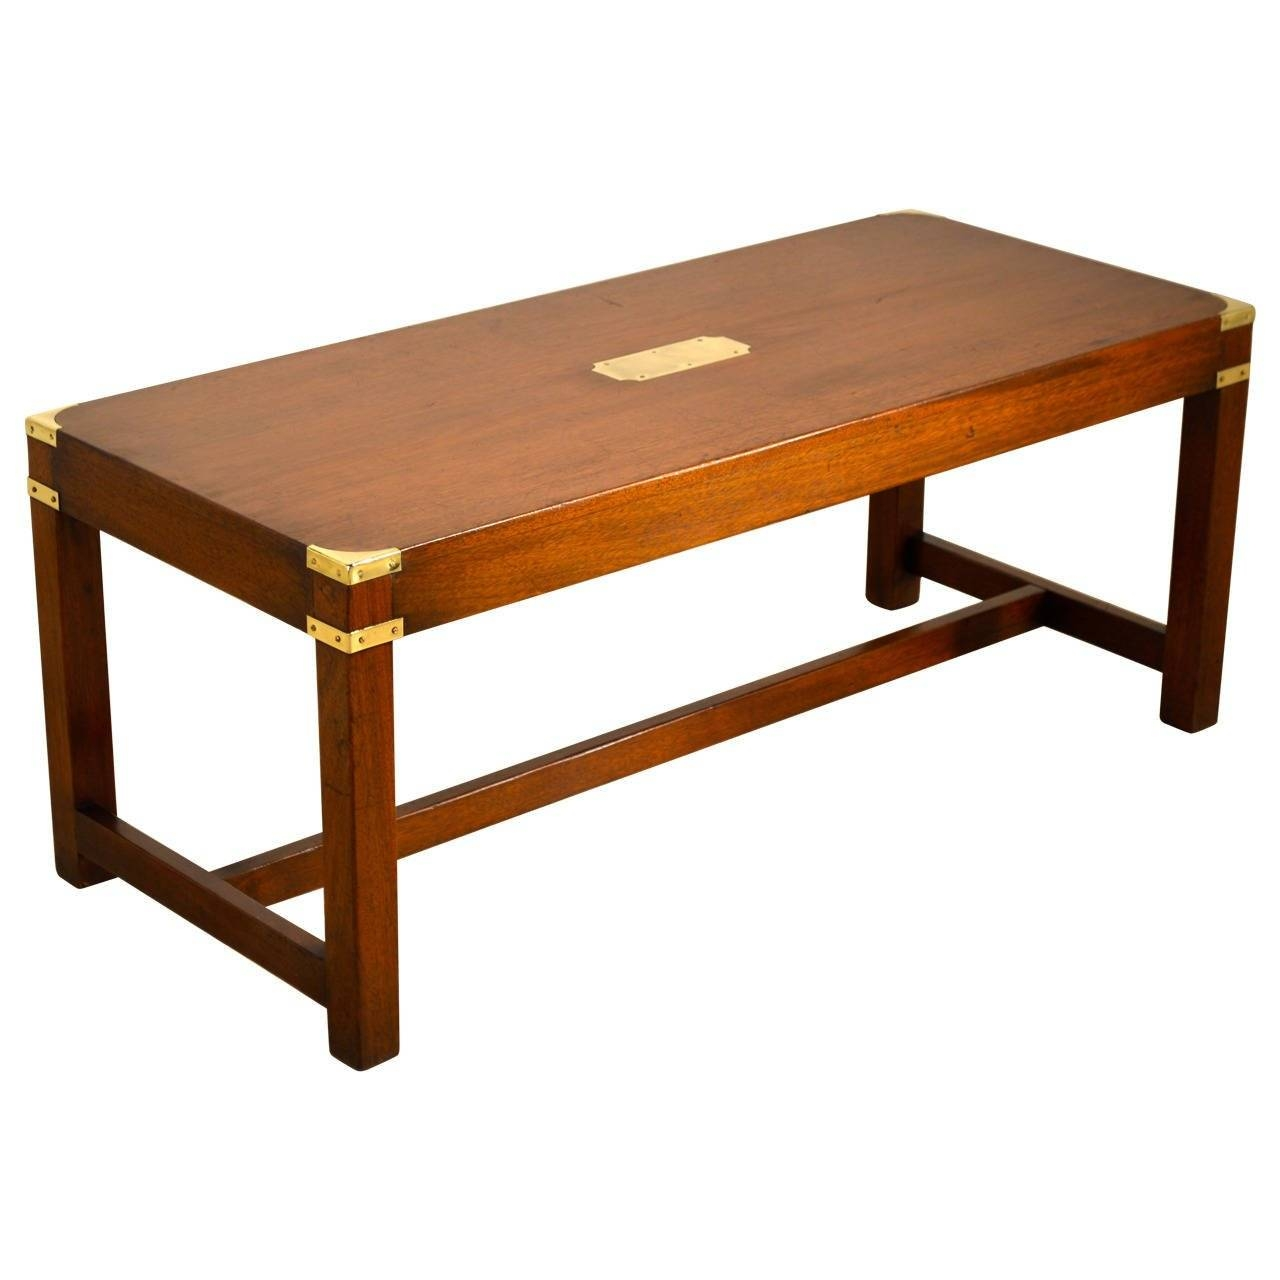 English Campaign Coffee Table, Circa 1940 At 1Stdibs within Campaign Coffee Tables (Image 12 of 30)